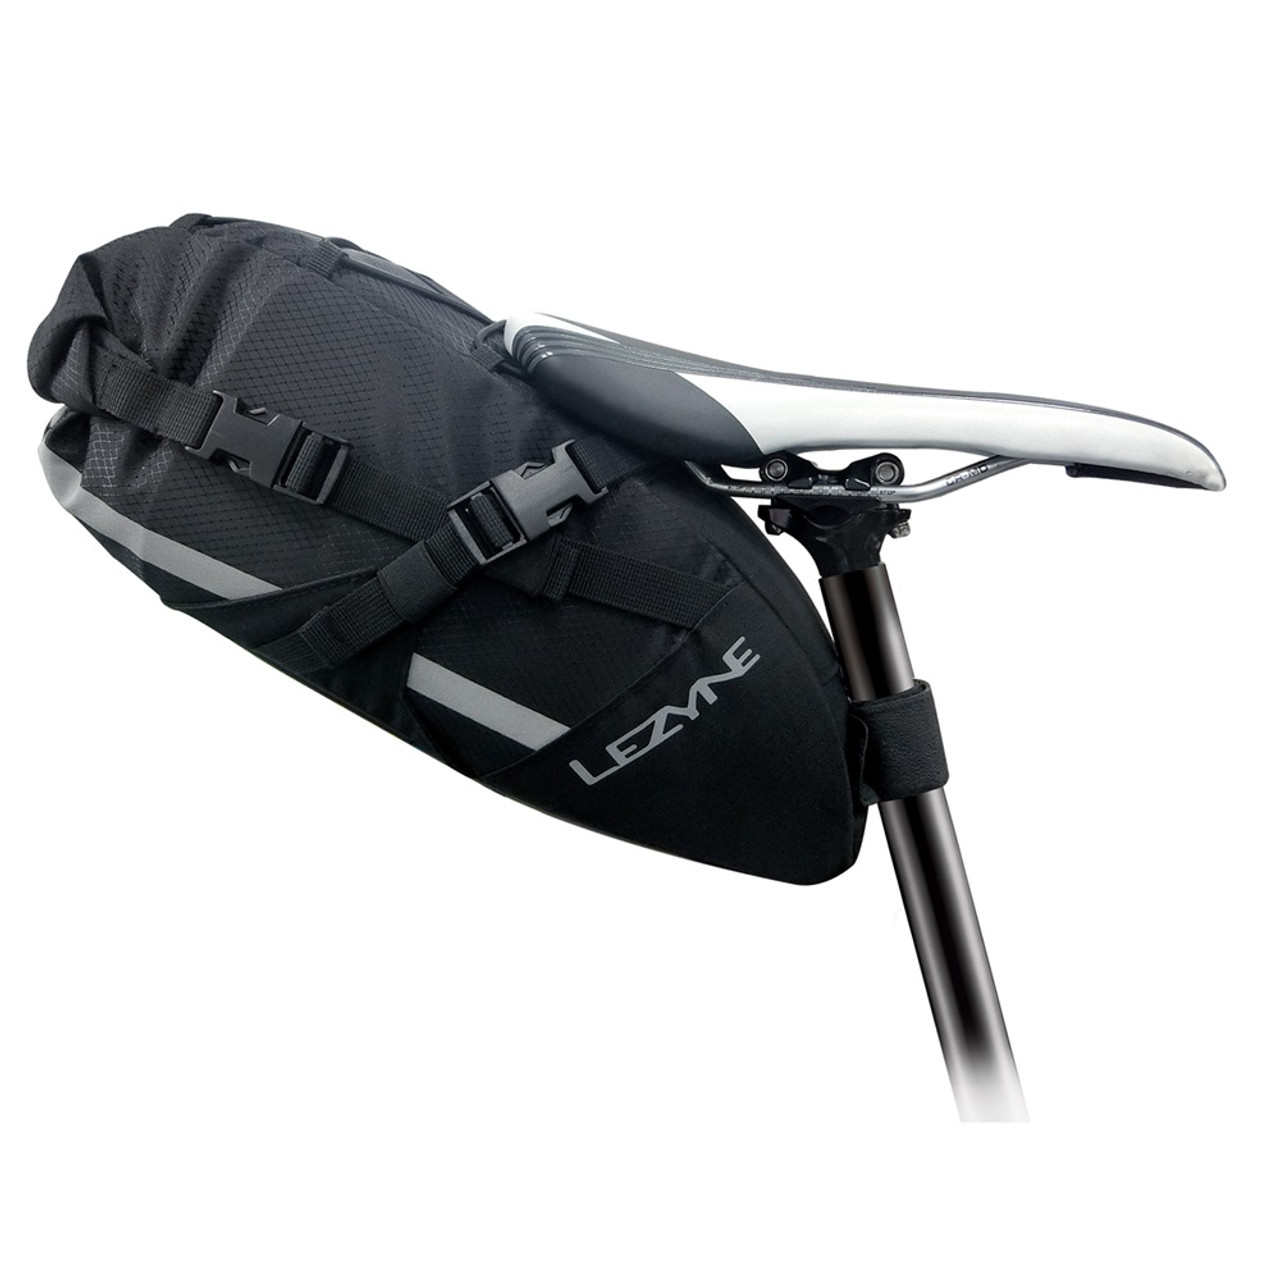 Lezyne XL Caddy Water Resistant Seat Bag